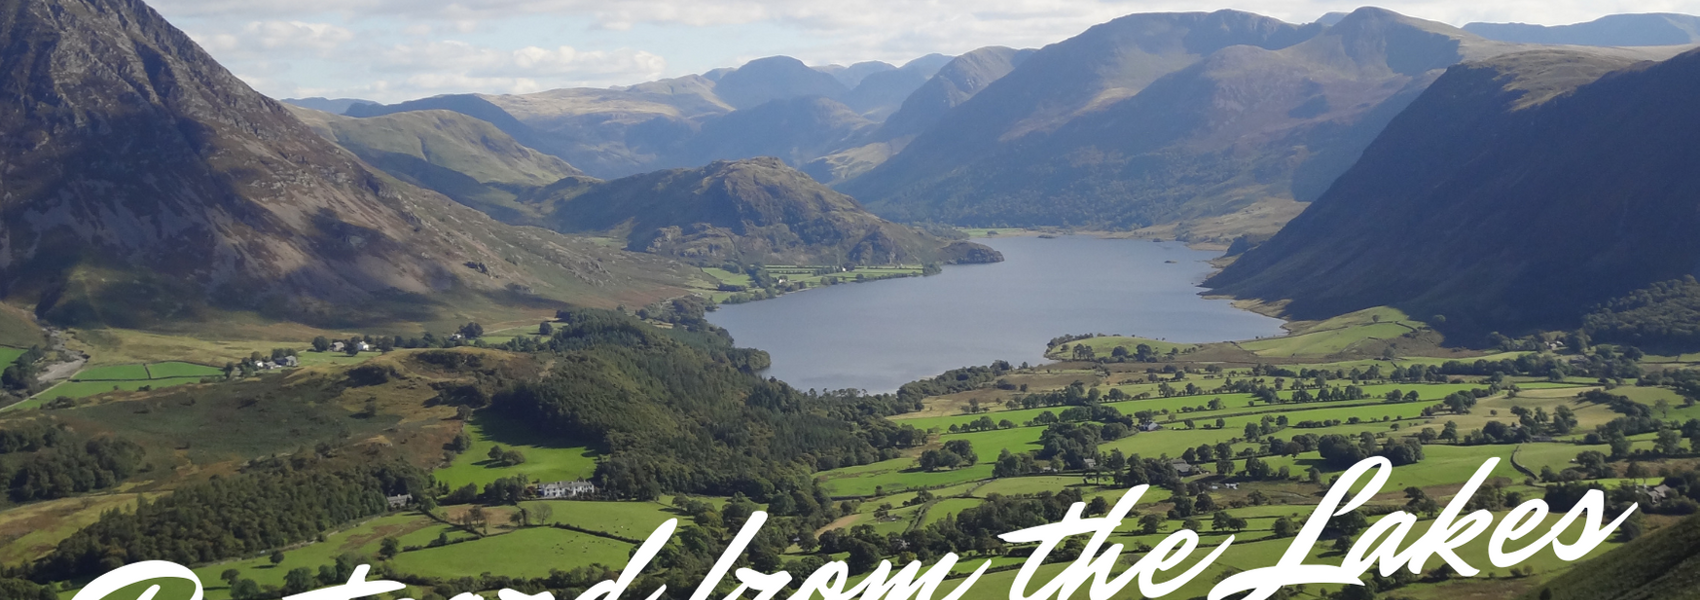 A Postcard from the Lakes 11th September